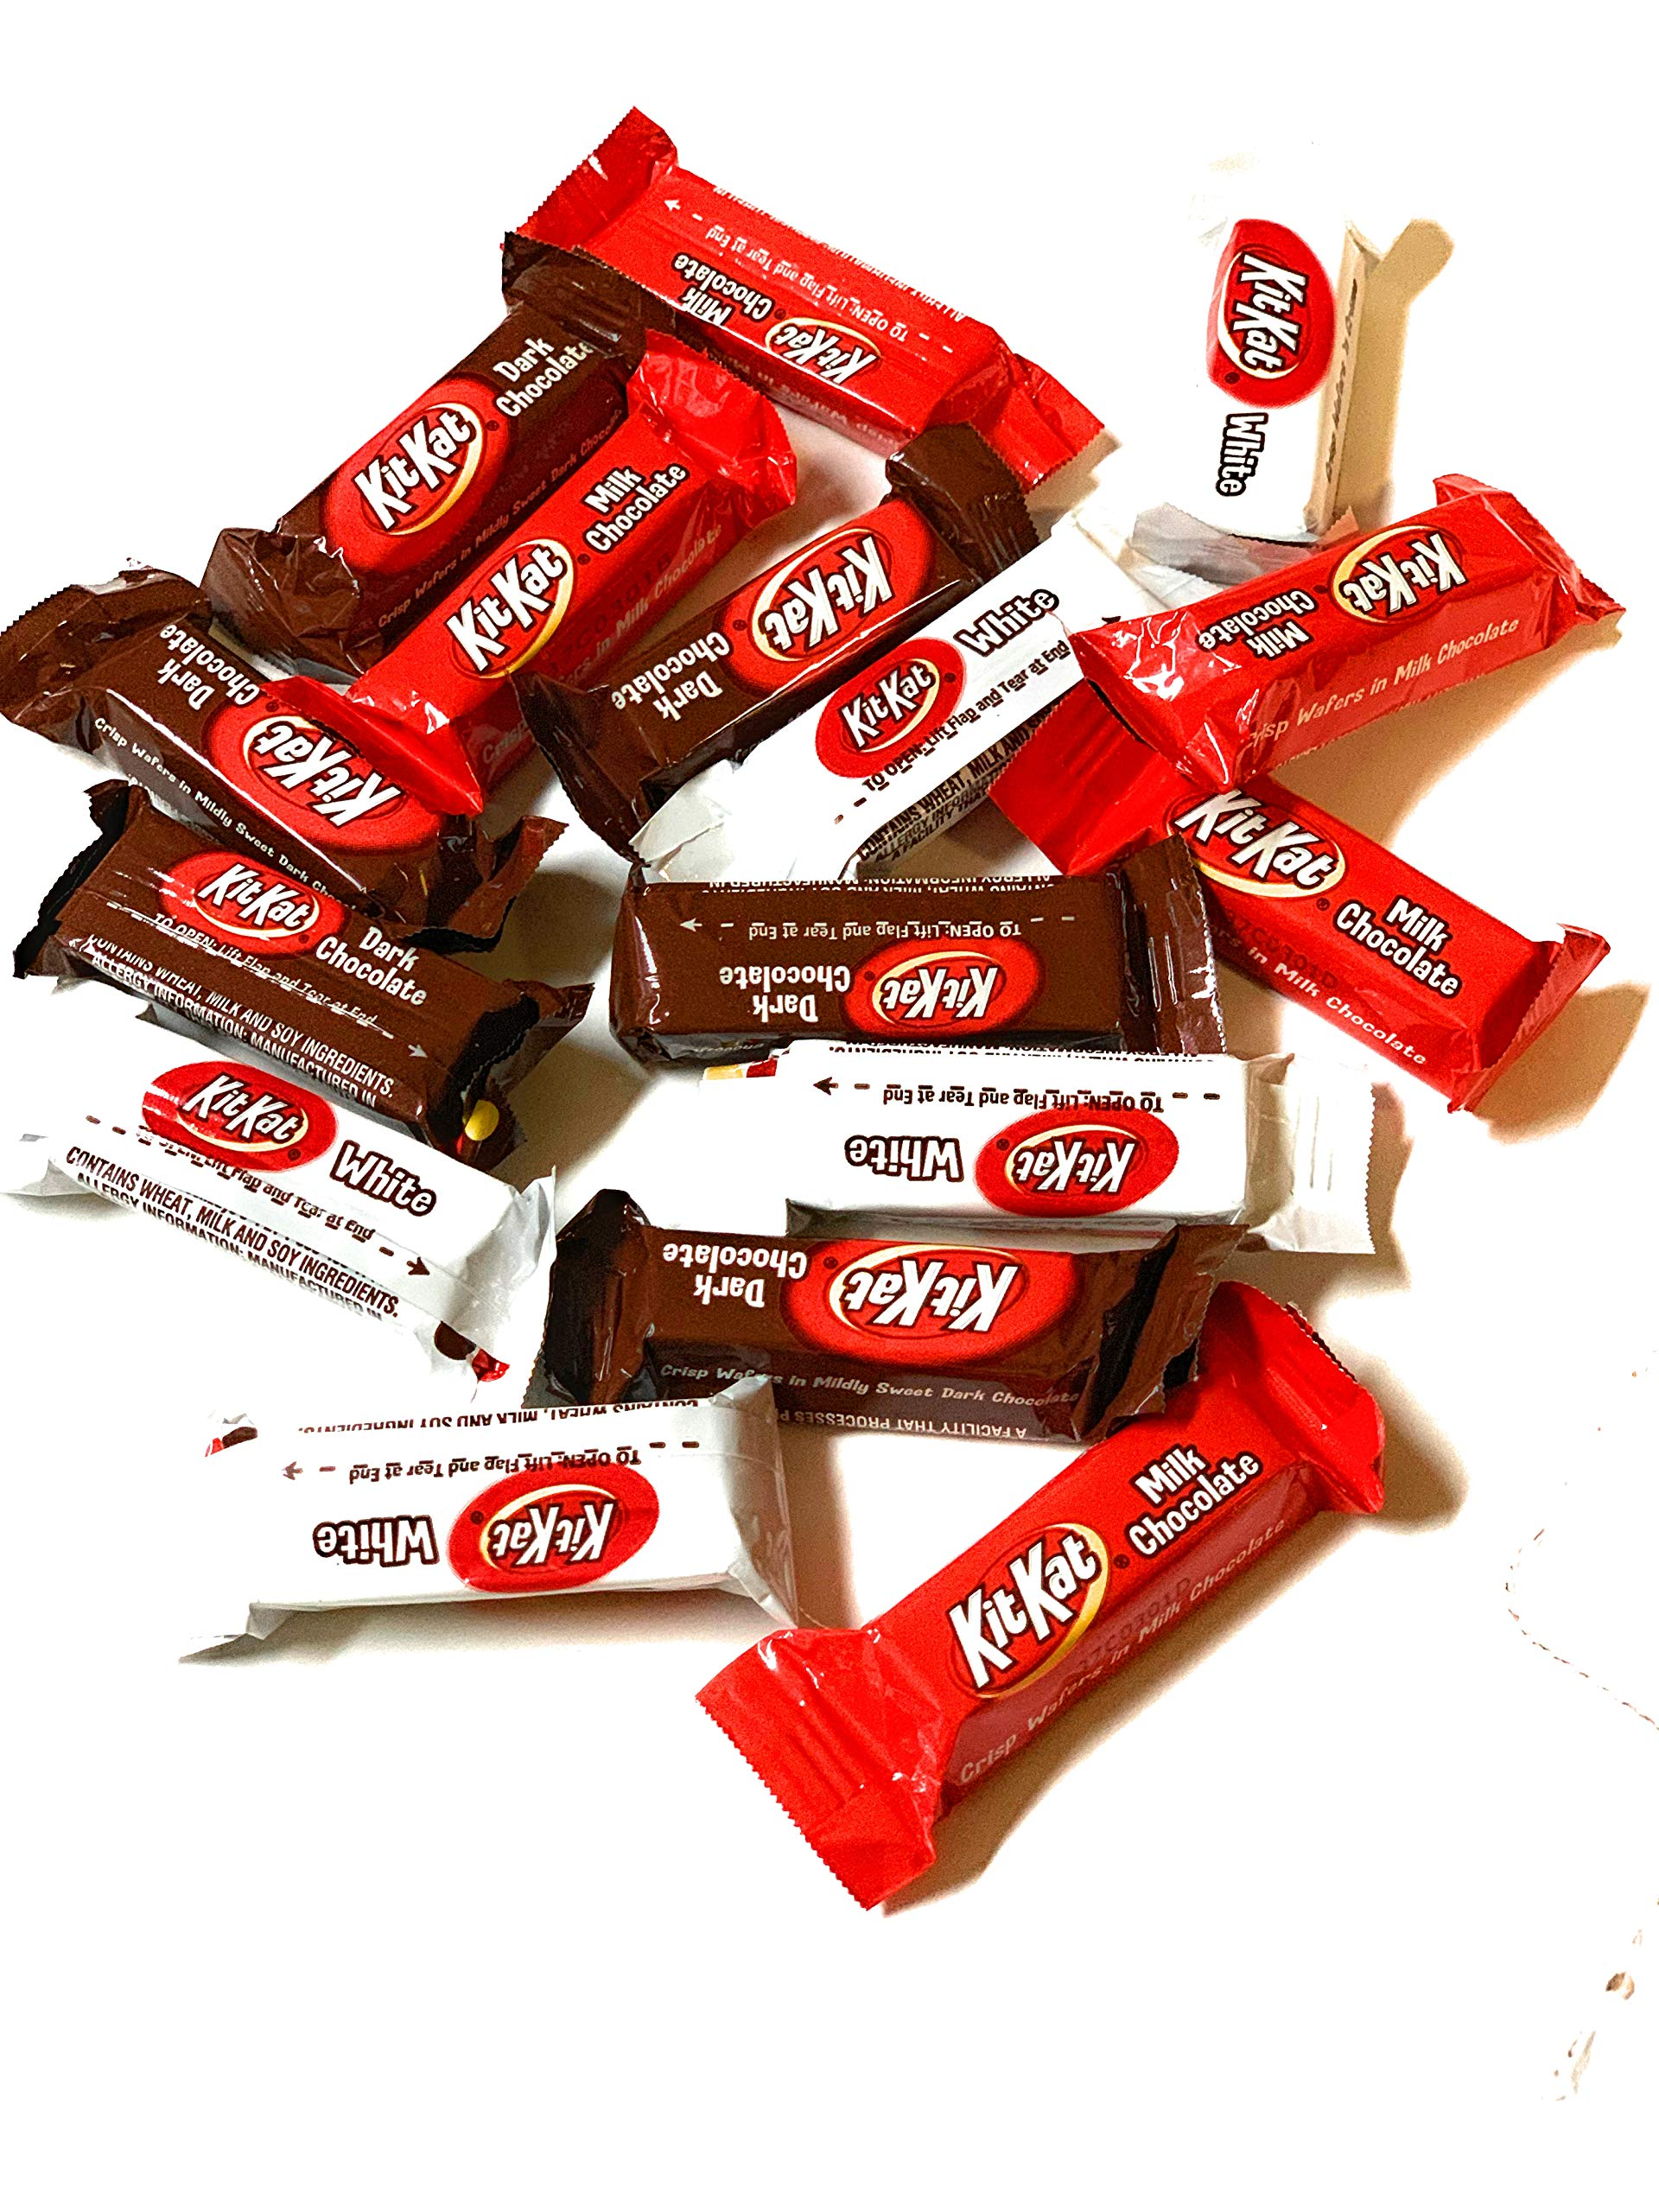 KitKat Mini Valentines Chocolate Assortment Mix Bulk RED, WHITE and Black - 5 LB by TamTam Candy